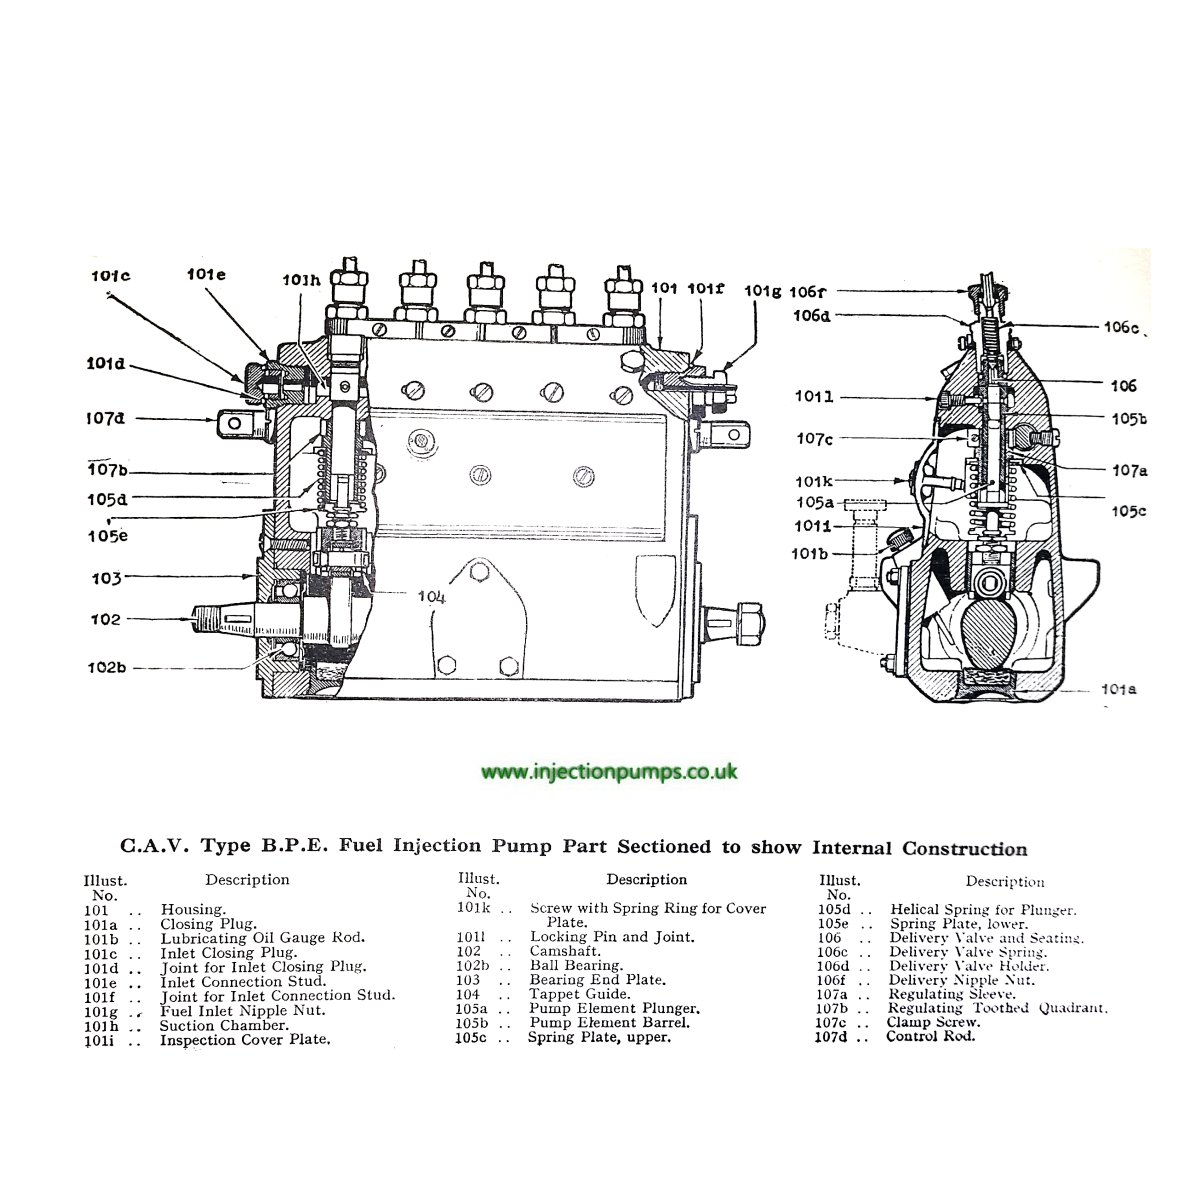 Stanadyne Fuel Injection Pump Diagram